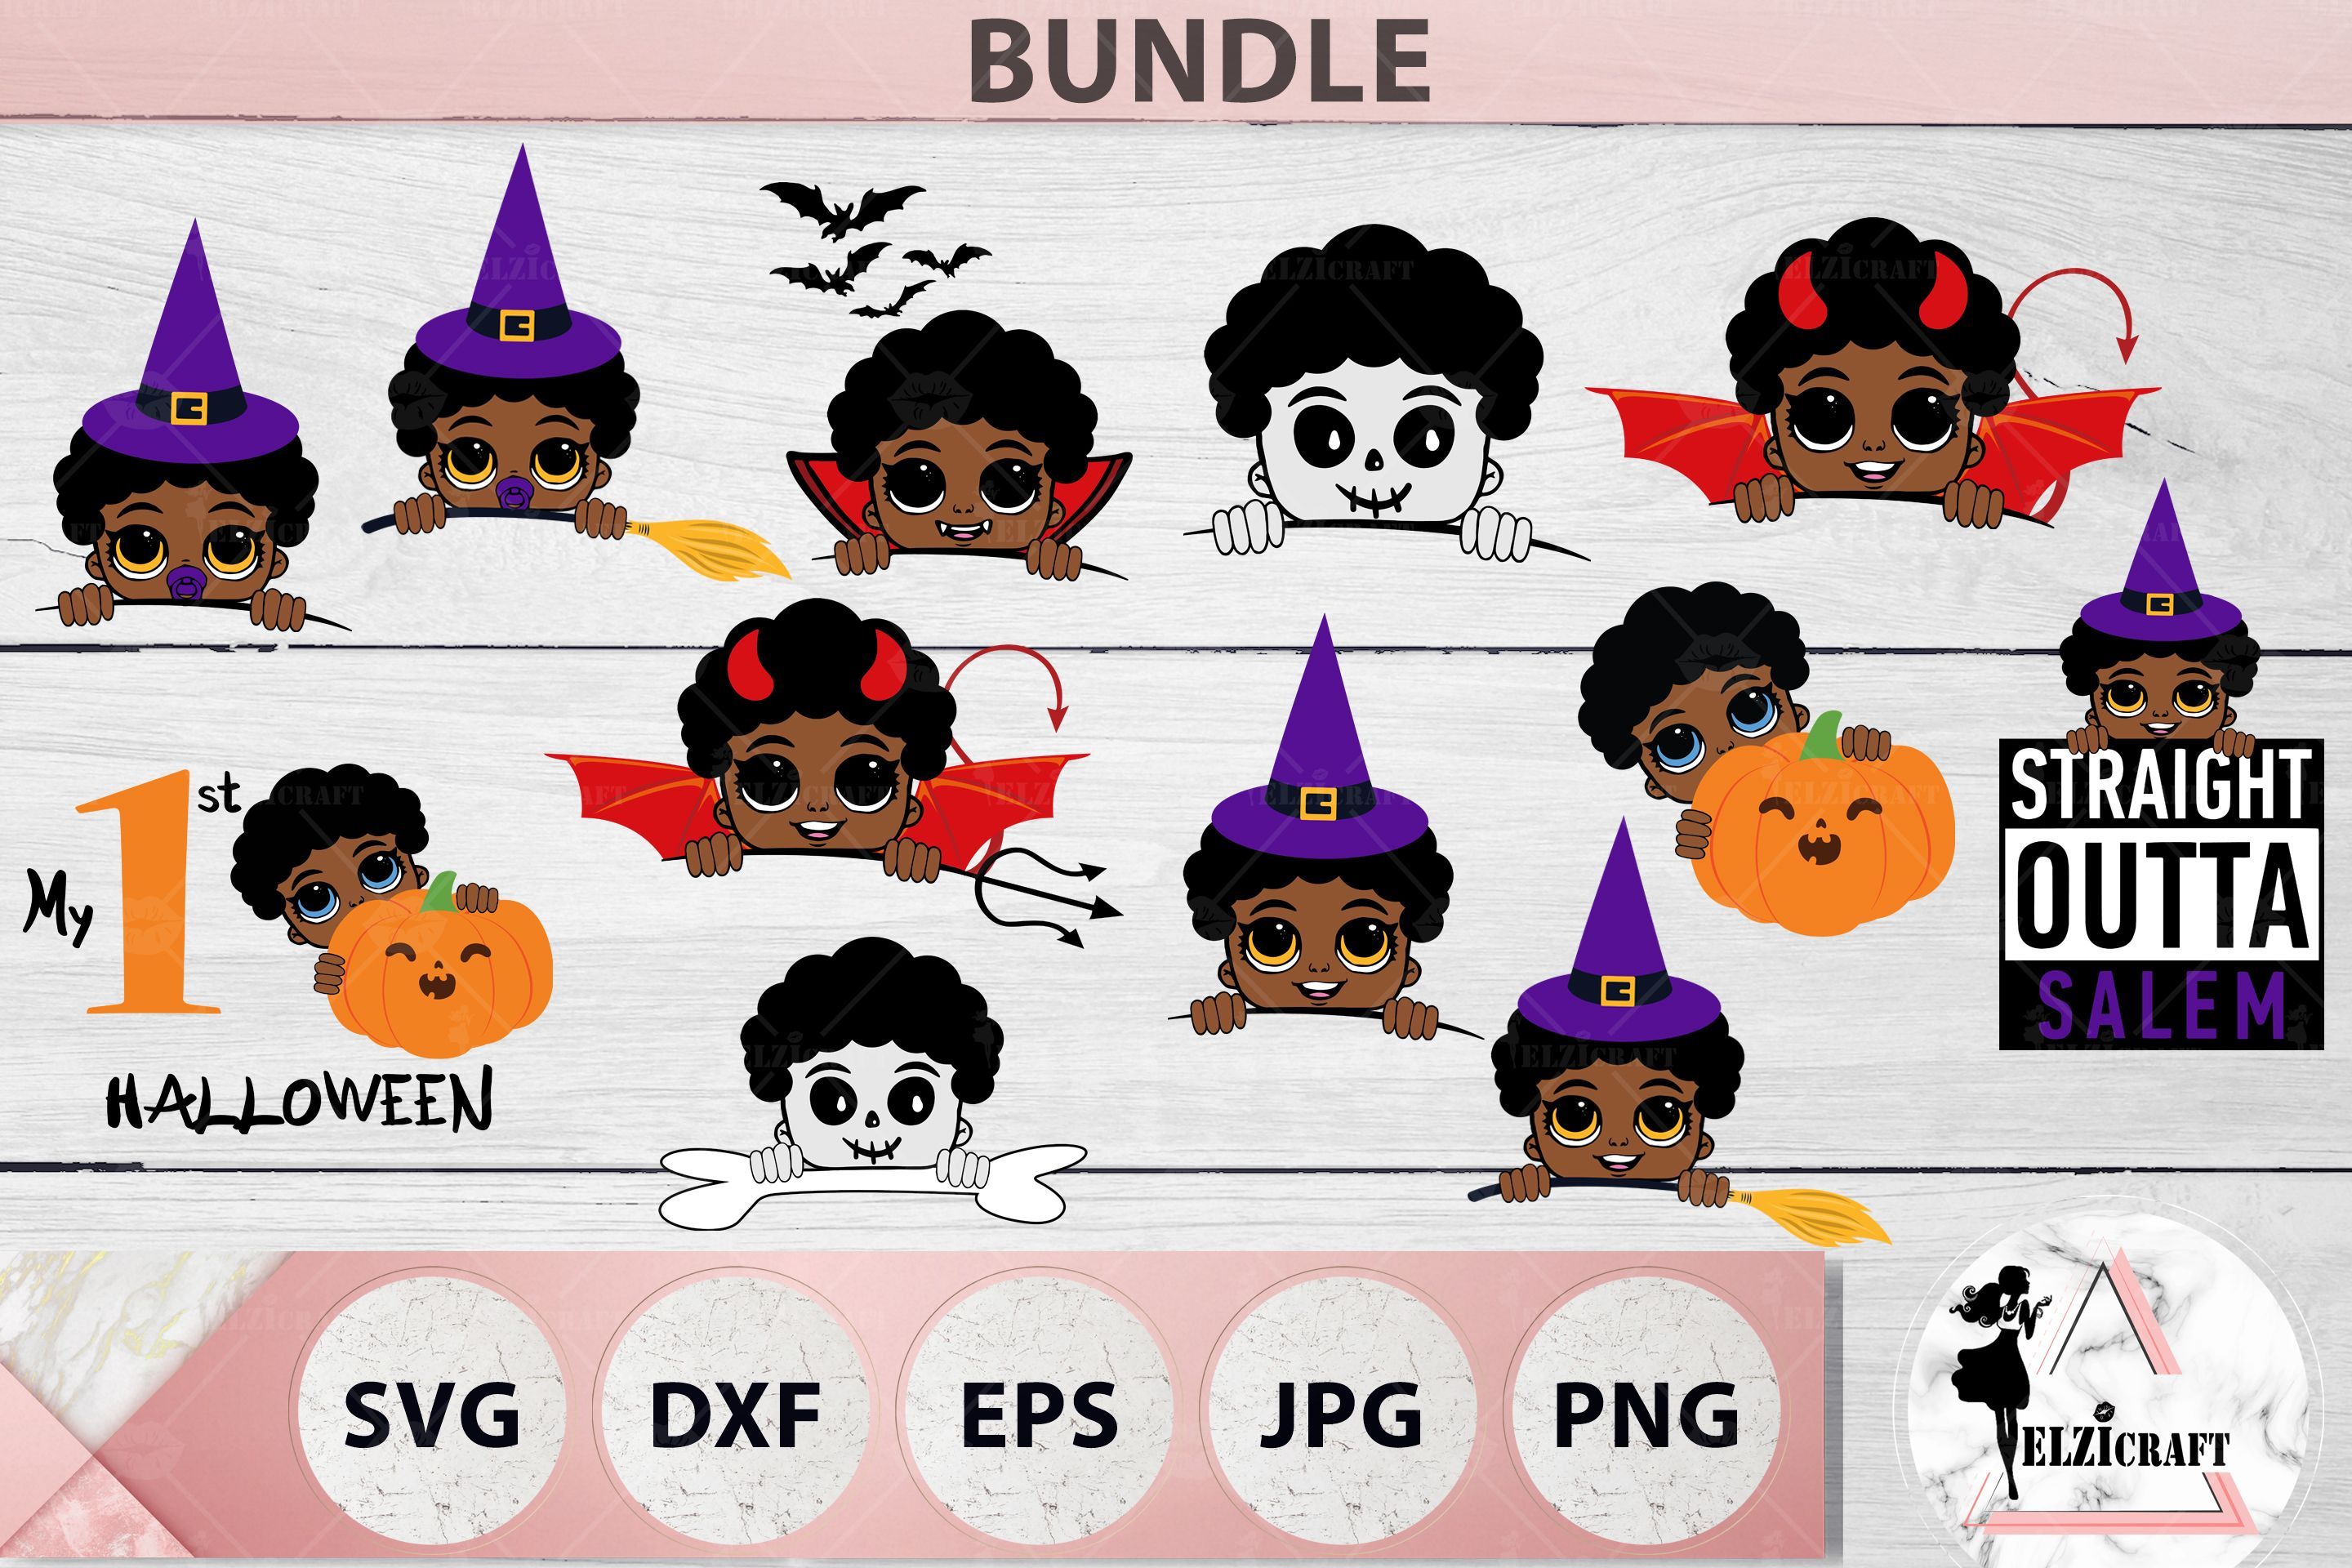 BUNDLE 12 Halloween Afro Boys SVG Files (Graphic) by elzicraft